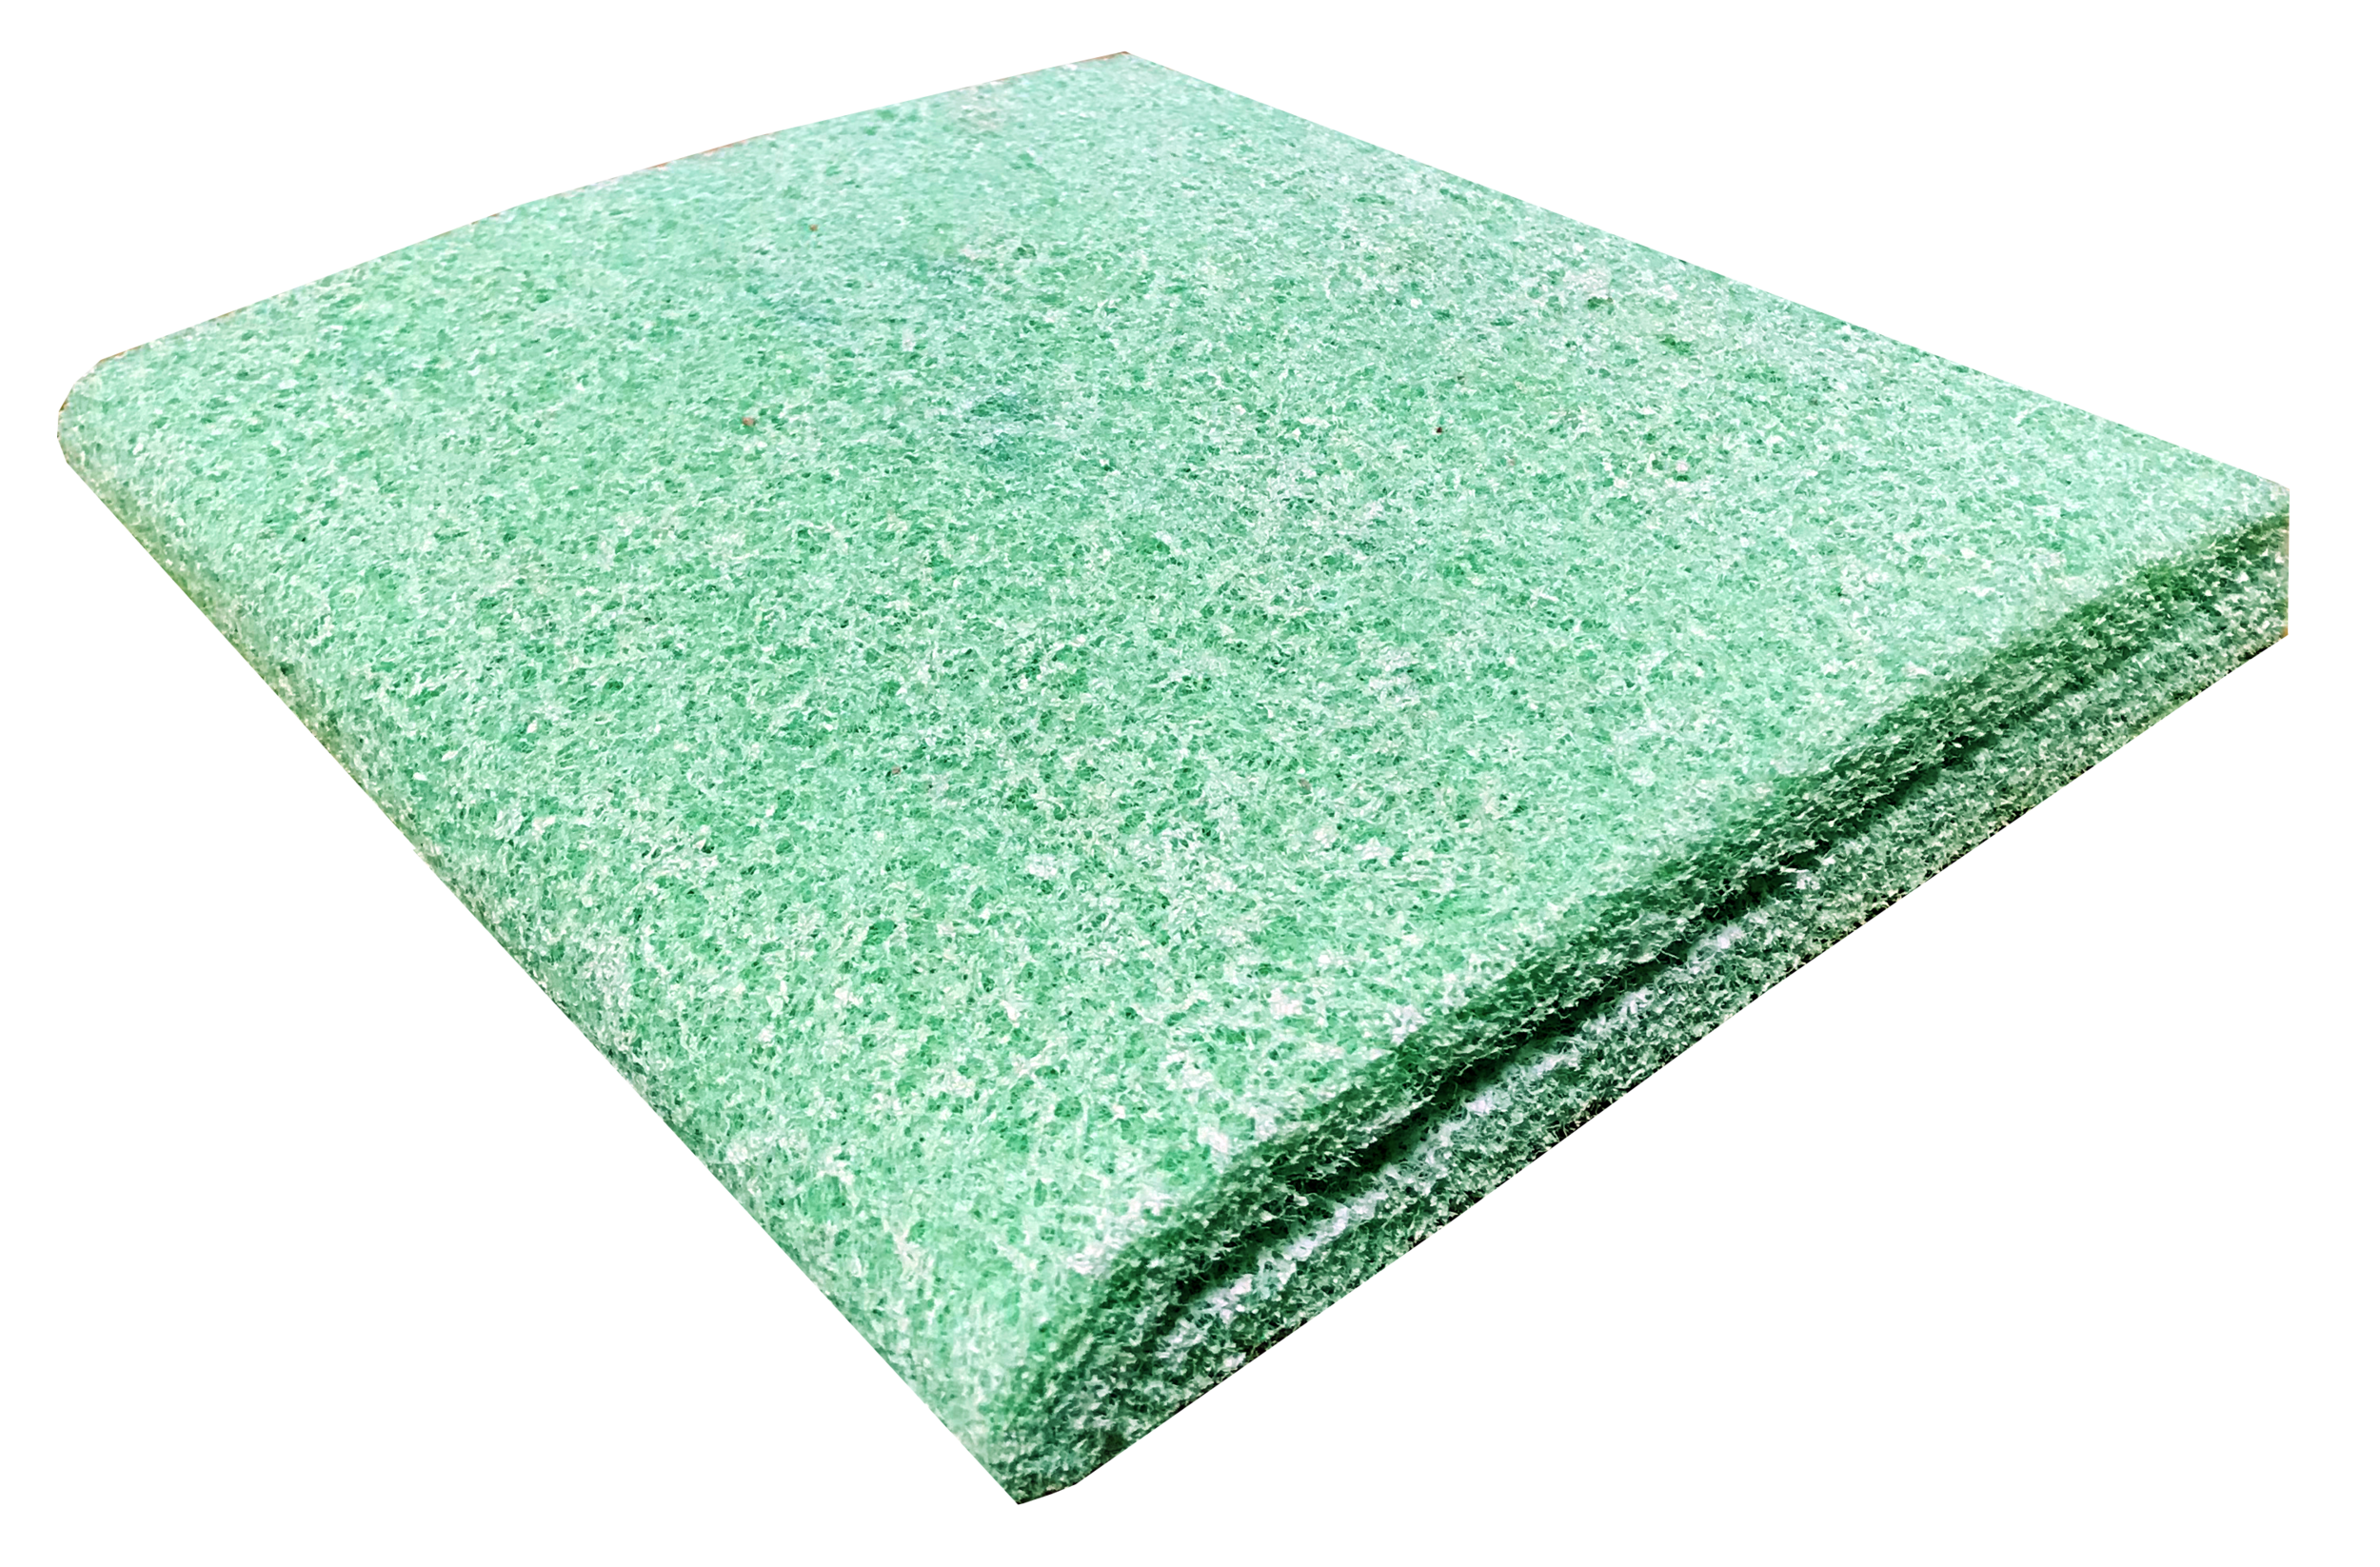 "18x10"" Phosphate Reducer Pad   SKU: AM41004  UPC#:7-49729-41004-1  Case Pack: 50pcs.  Master Carton Weight: 20lbs.  Master Carton Size: 33""x22""x11"""